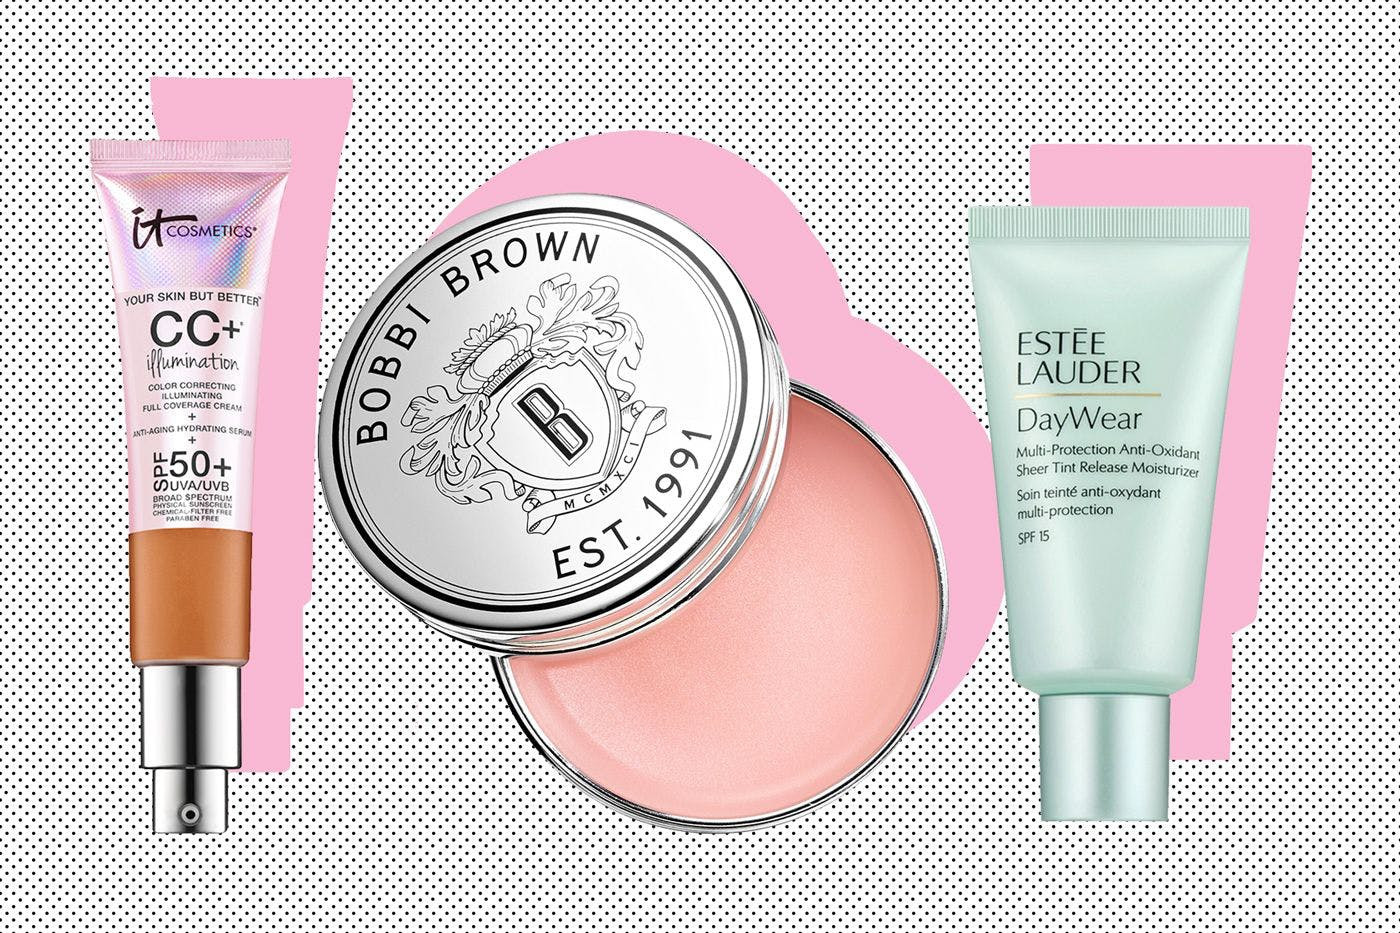 8 clever SPFs products suitable for every occasion, Stylist